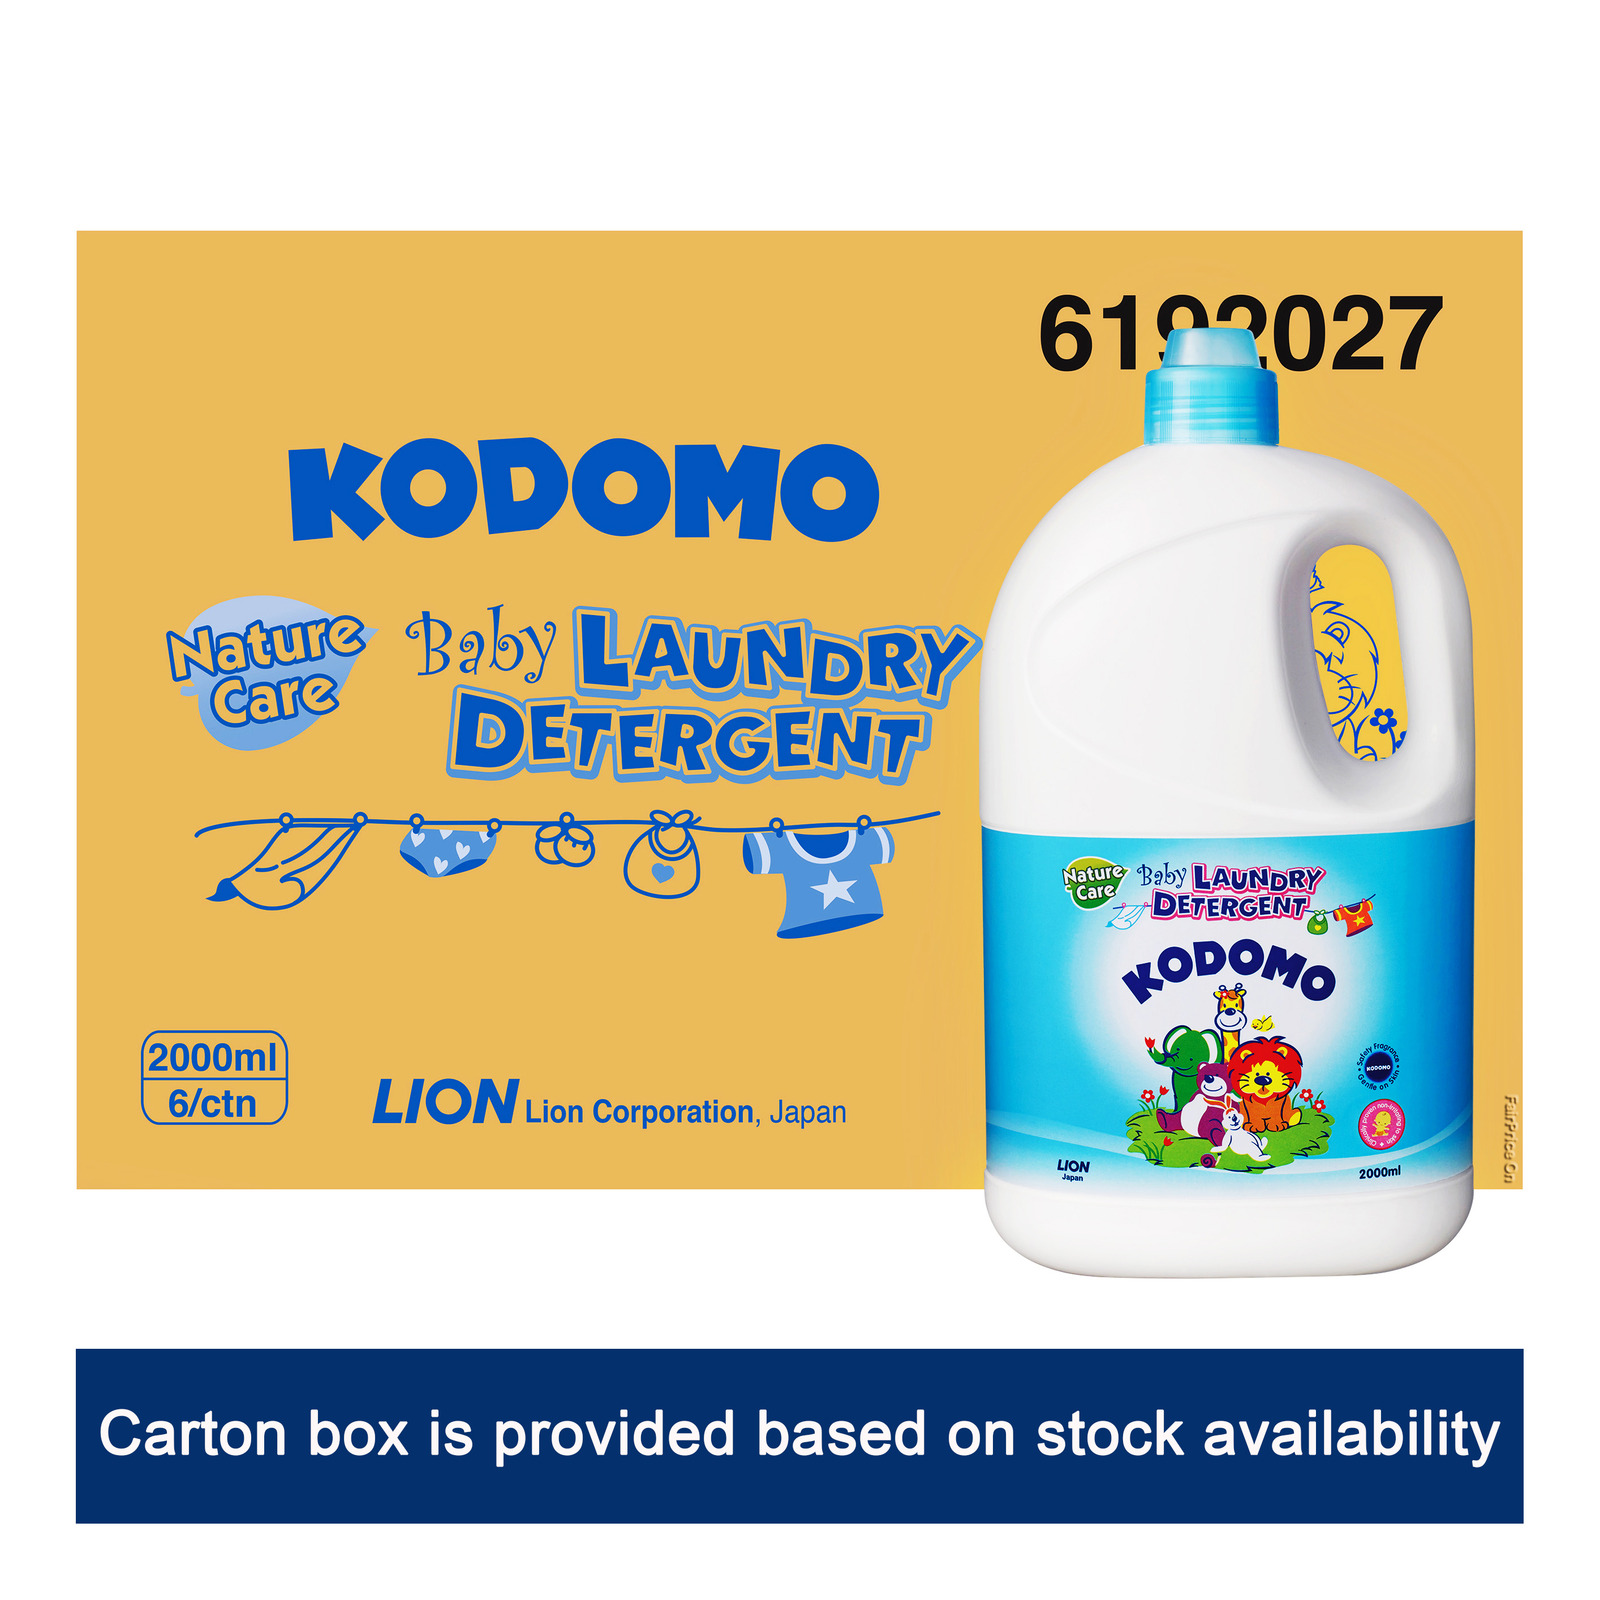 Kodomo Baby Laundry Detergent - Nature Care